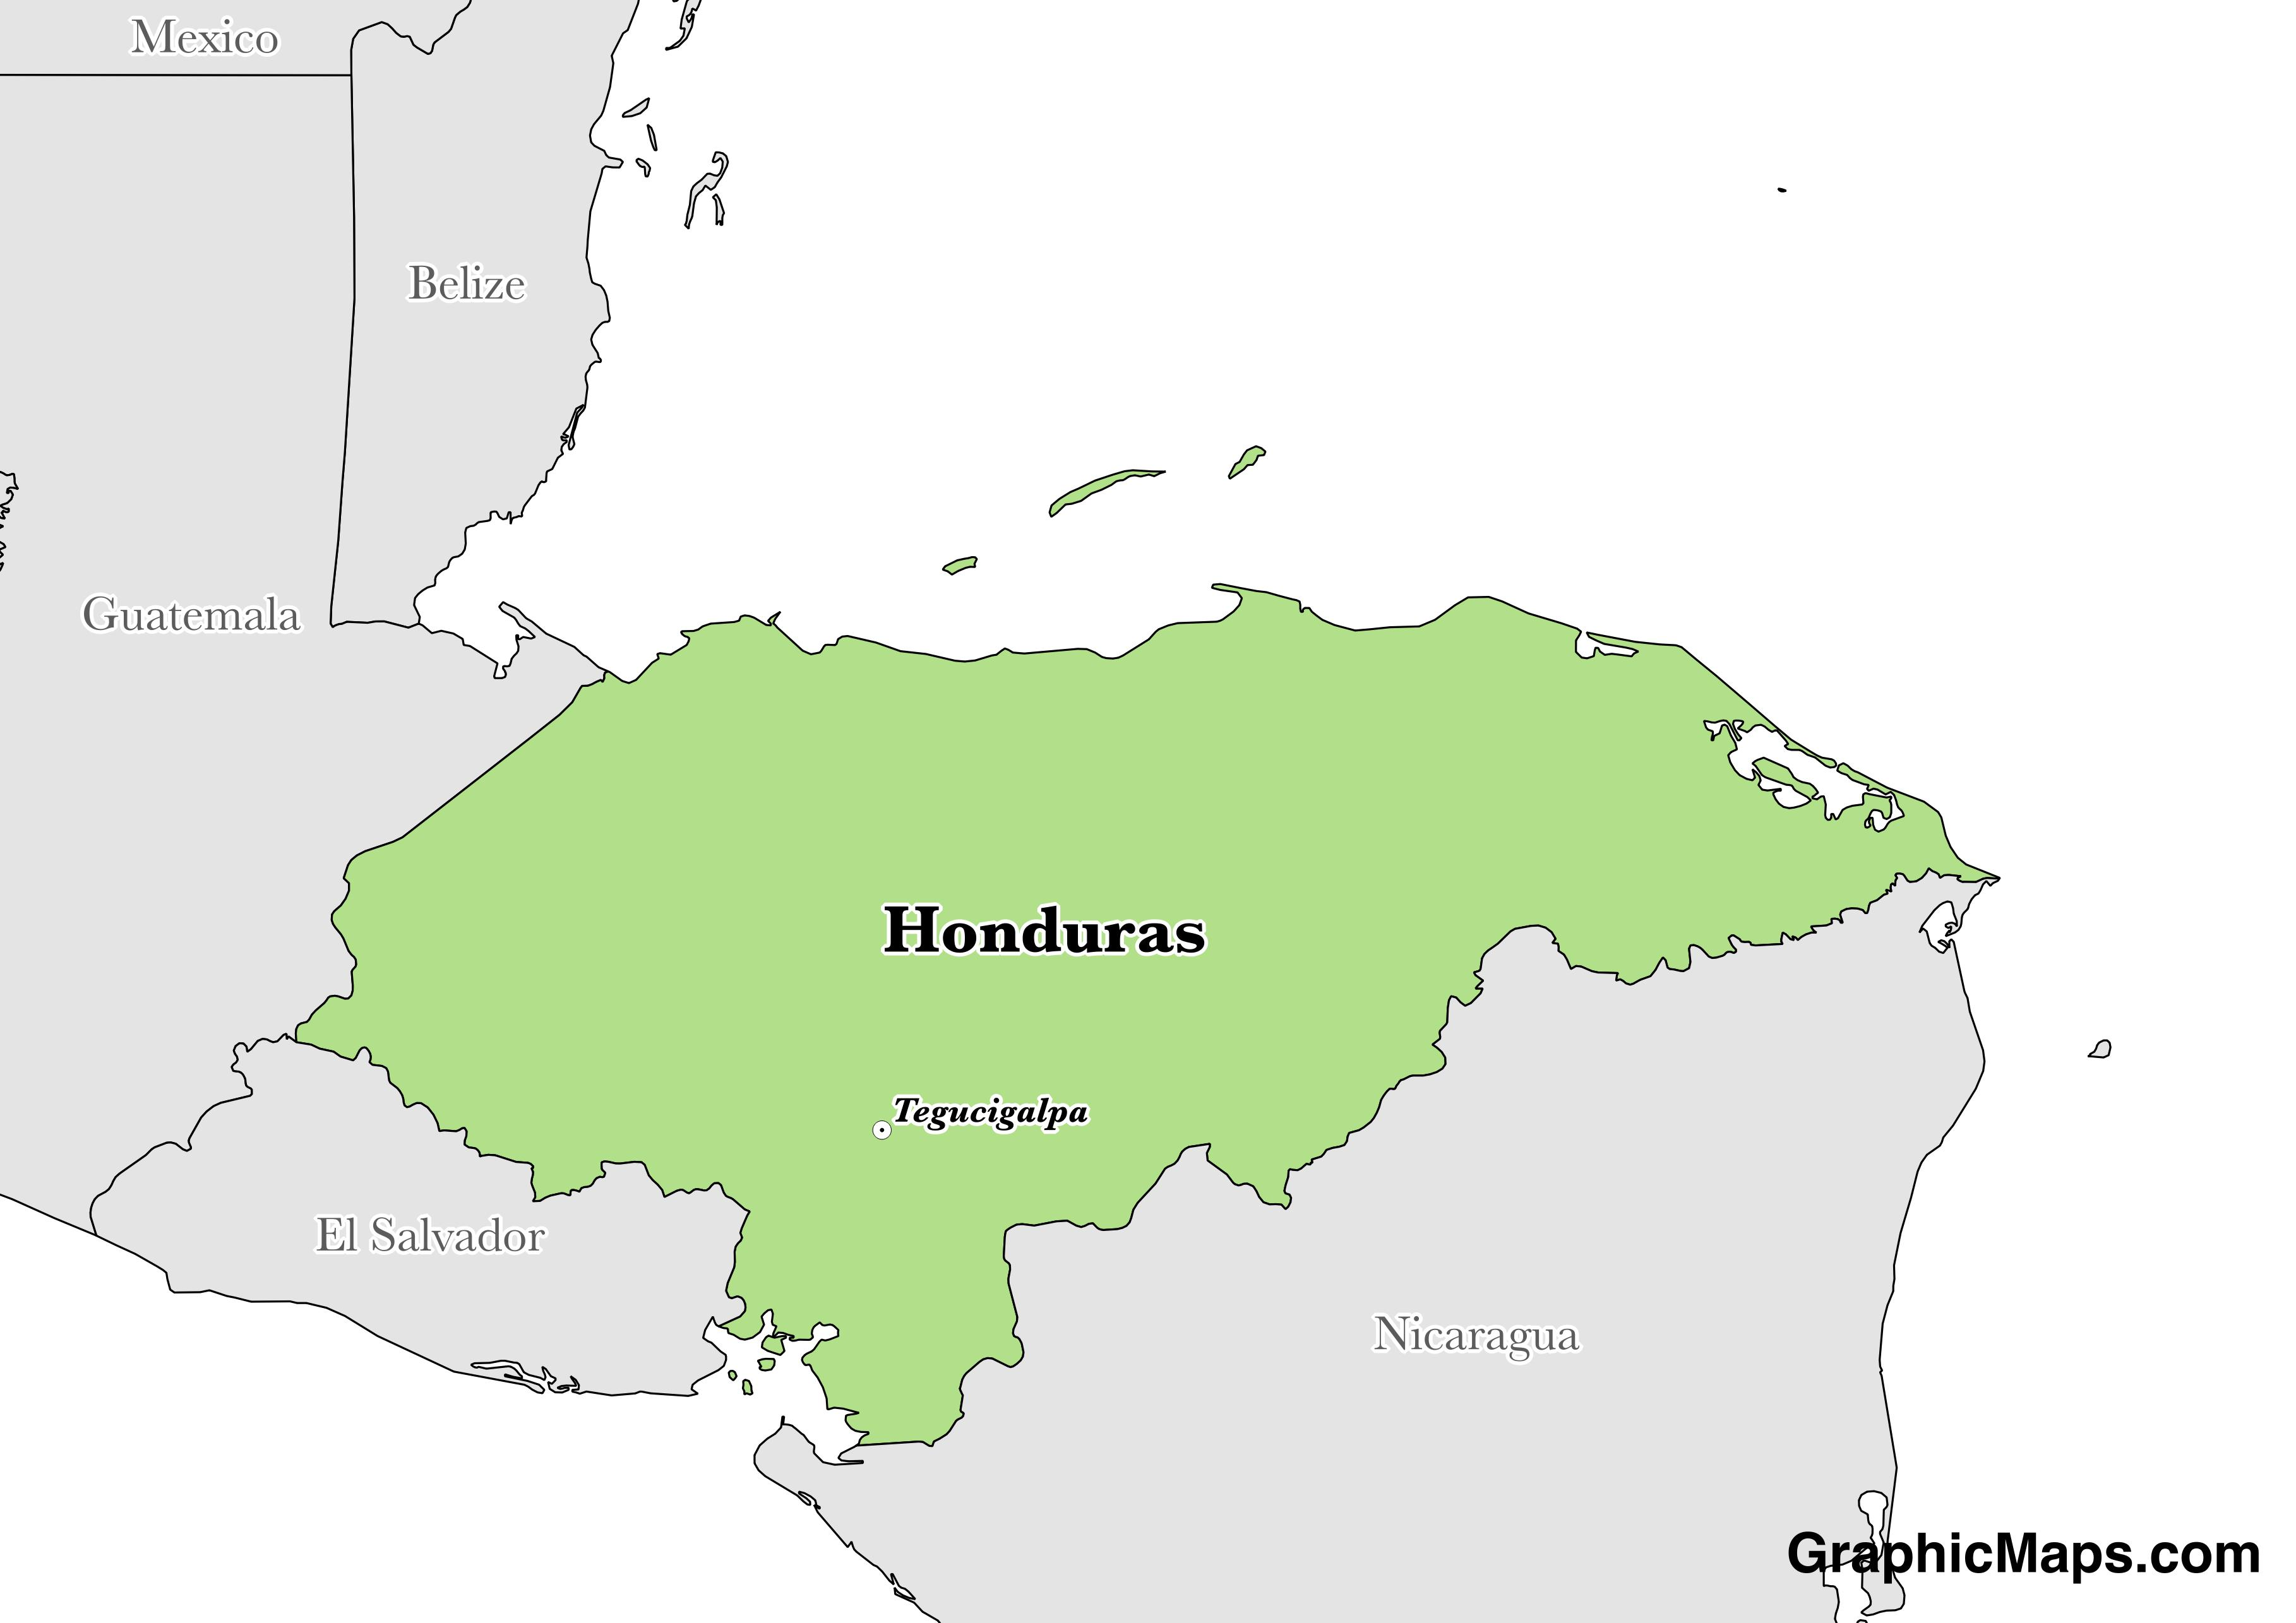 Map showing the location of Honduras